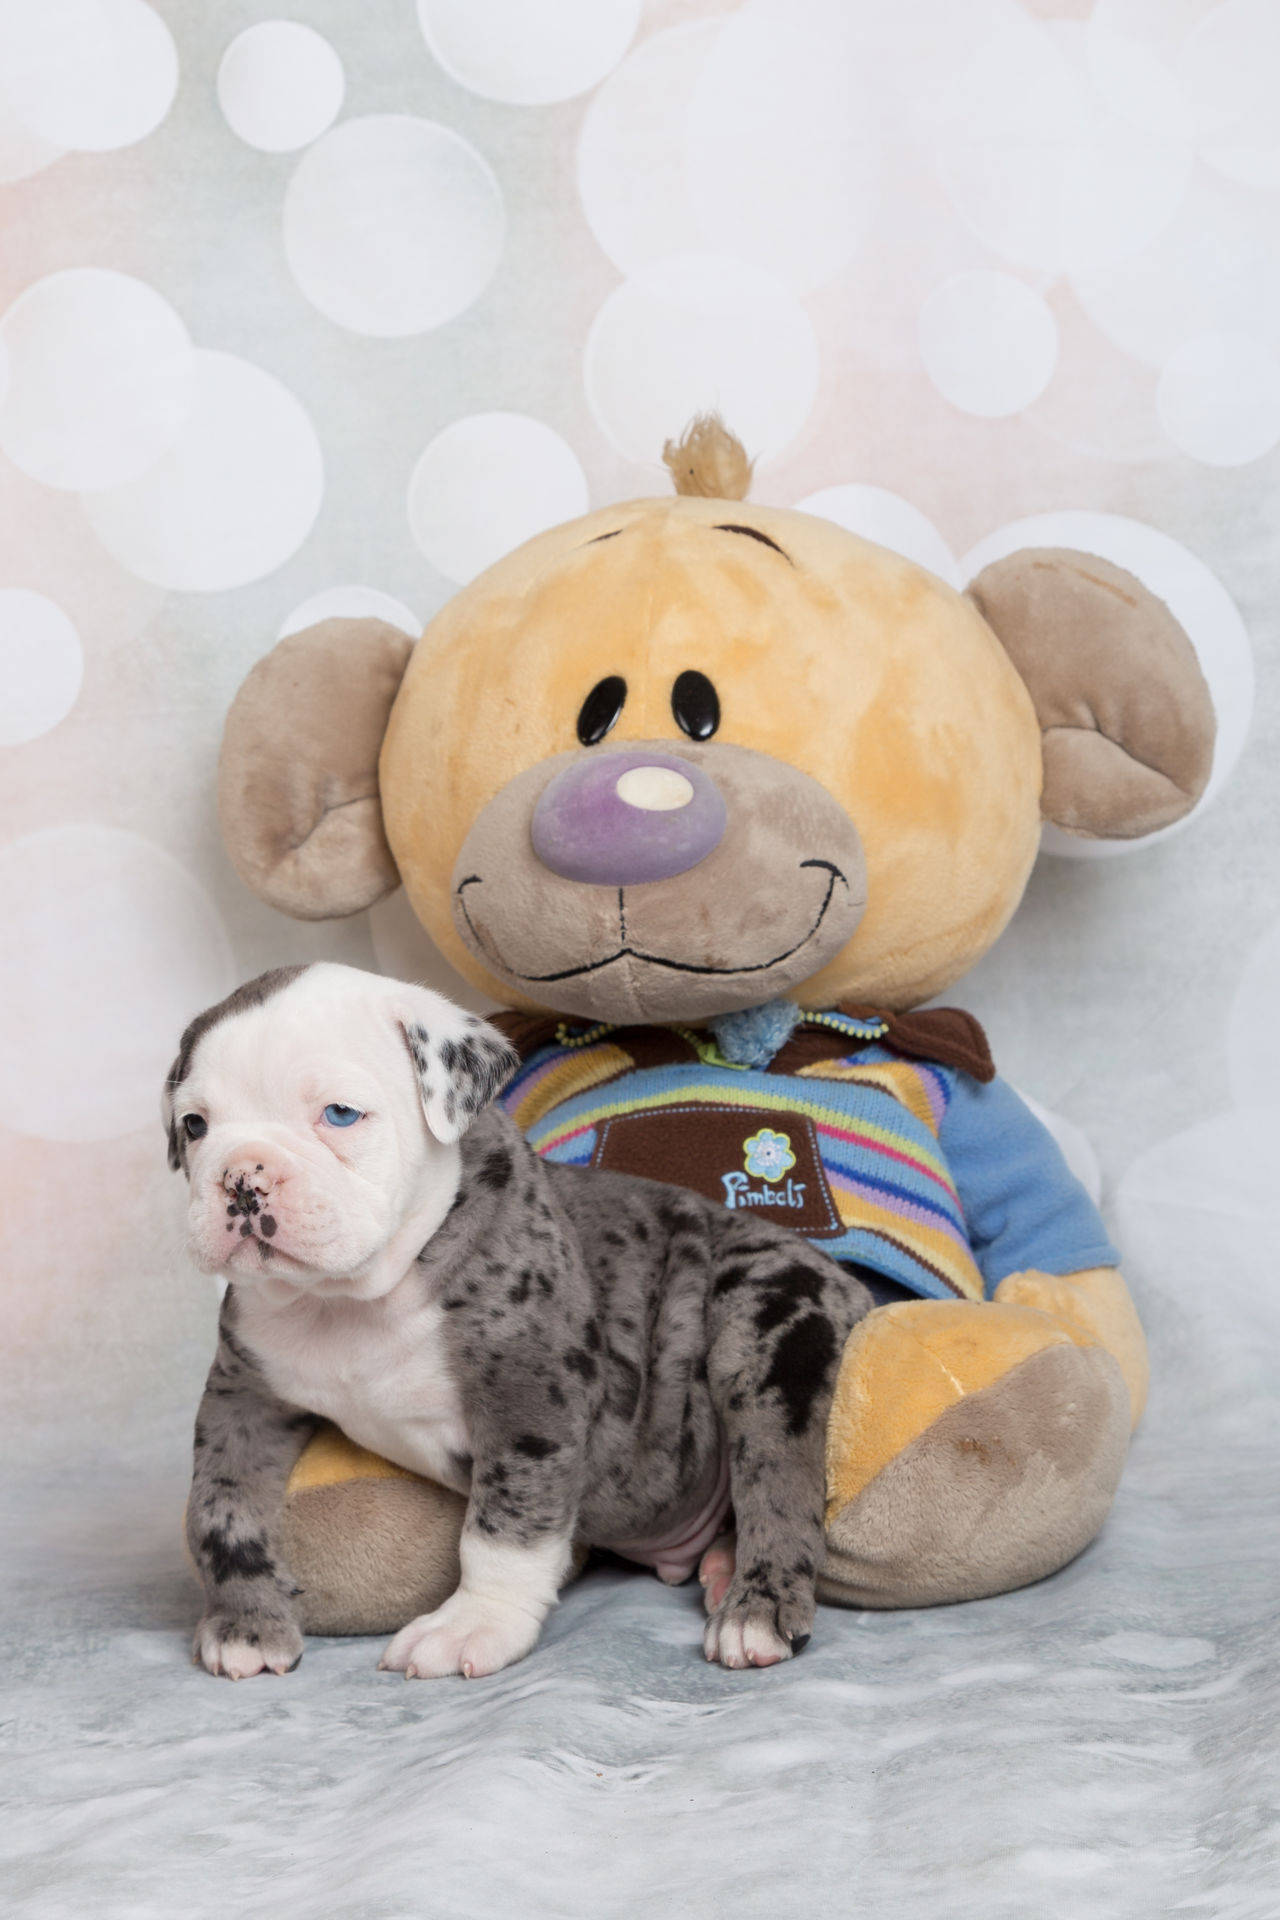 Animal Animal Themes Animals Baby Babydog Babydoggy Bulldog Cute Dog English Bulldog Love My Dog  OEB Old English Bulldog Pet Pets Stuffed Animal Stuffed Animal Friend Stuffed Animal Photo Shoot Sweet